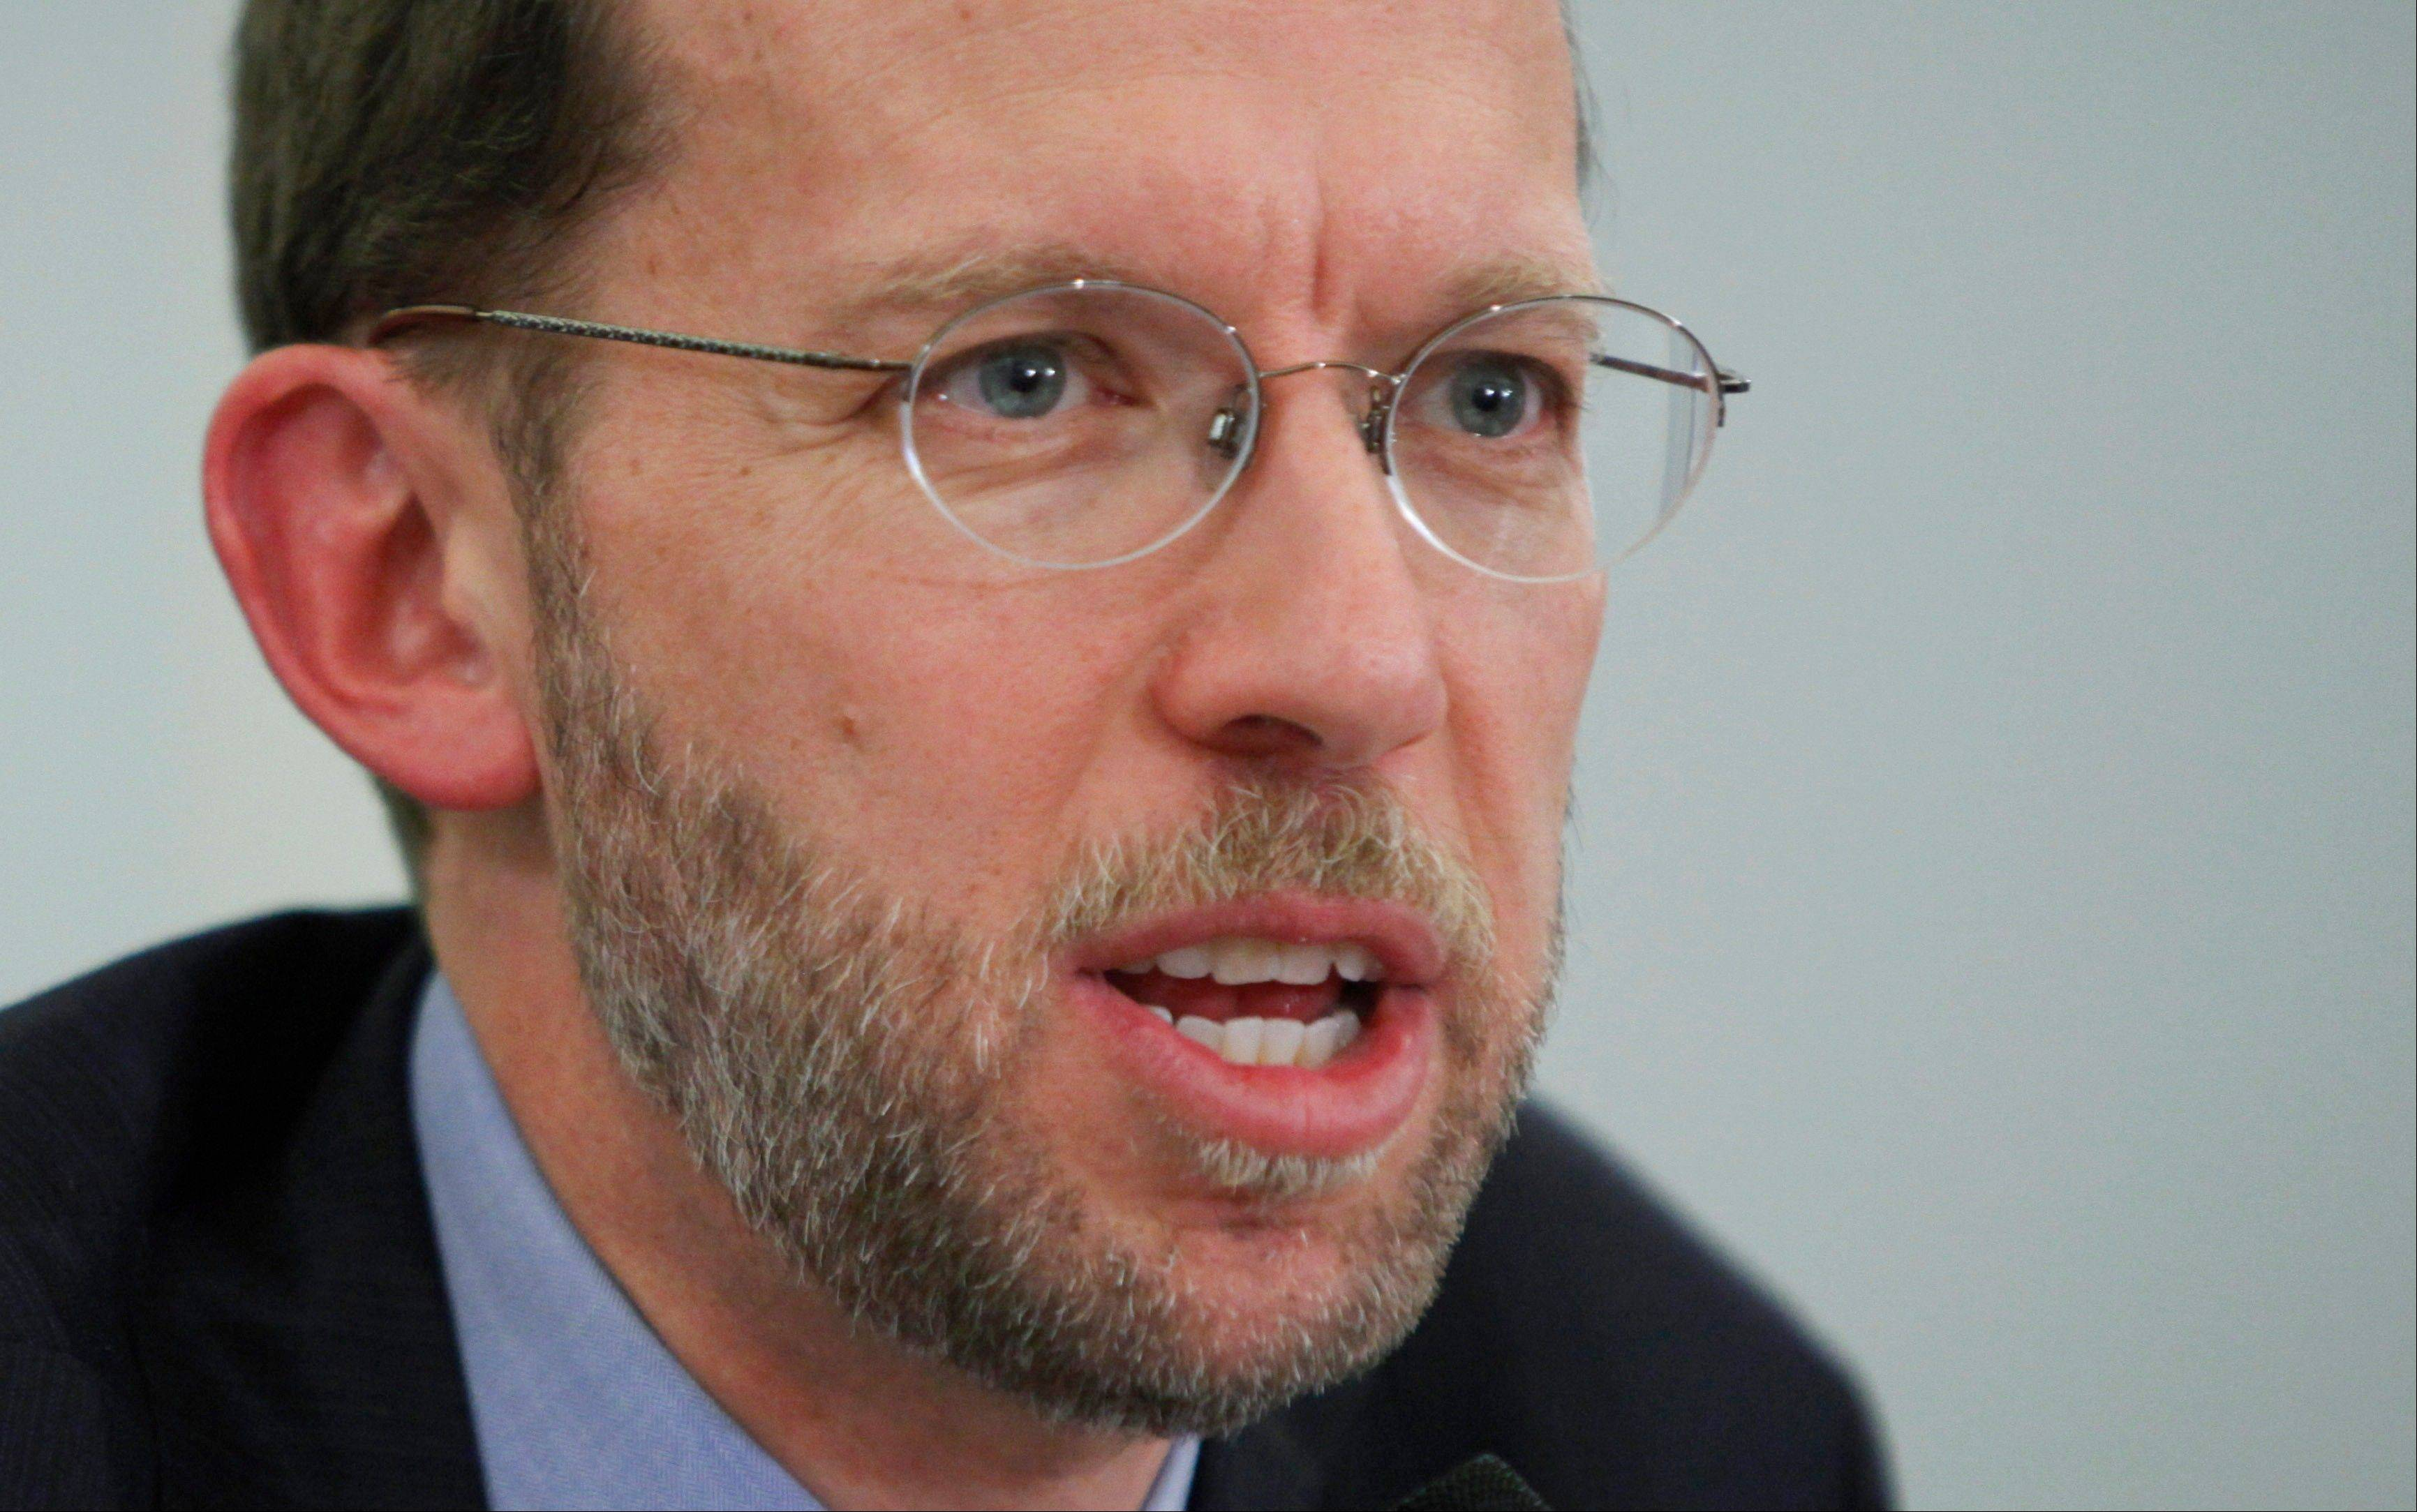 Congressional Budget Office Director Douglas Elmendorf testifies on Capitol Hill in Washington last January.The nonpartisan budget arm of Congress has released its findings on the effects of the health care reform law, the first in-depth look at the law since the Supreme Court ruled it constitutional.